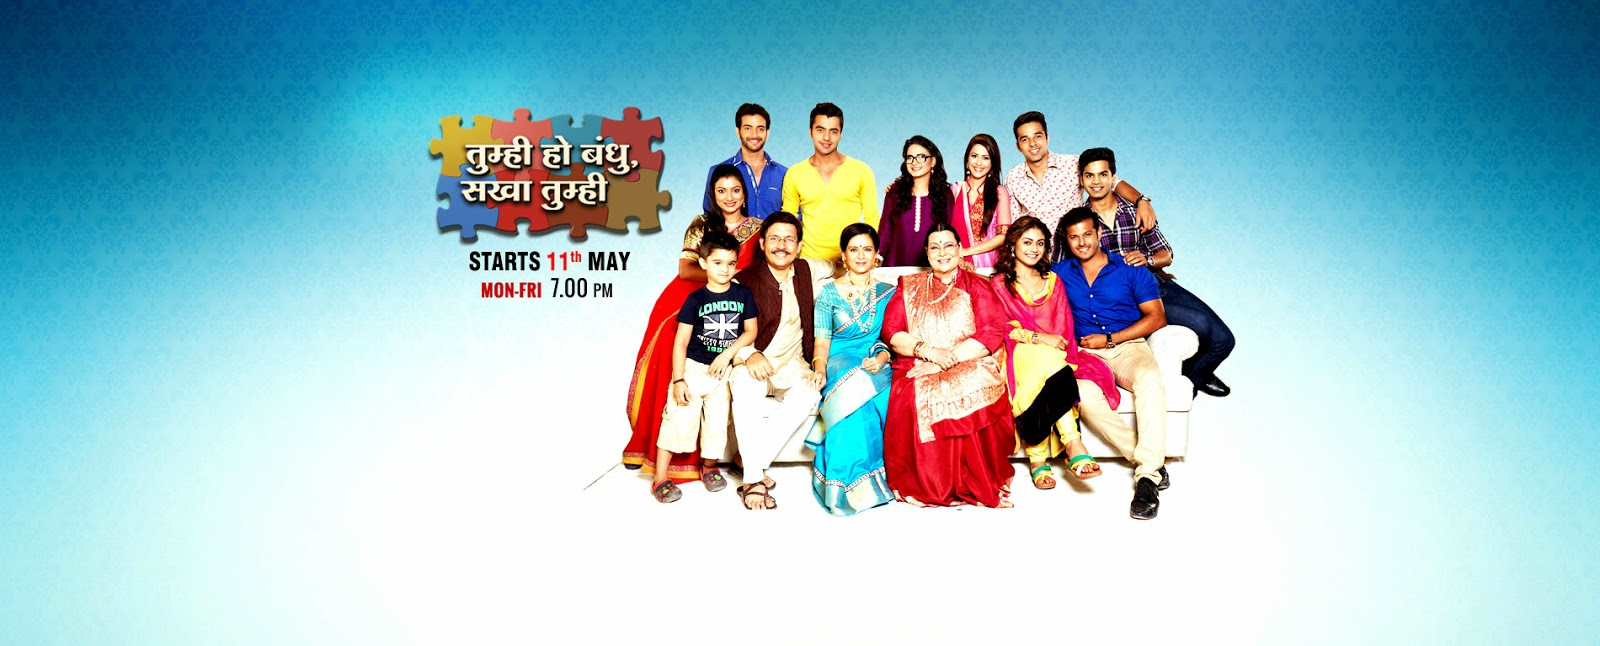 Tum Hi Ho Bandhu Sakha Tumhi tv serial on Zee TV cast and crew, story, timings, trp ratings, actress, pics, wallpaper